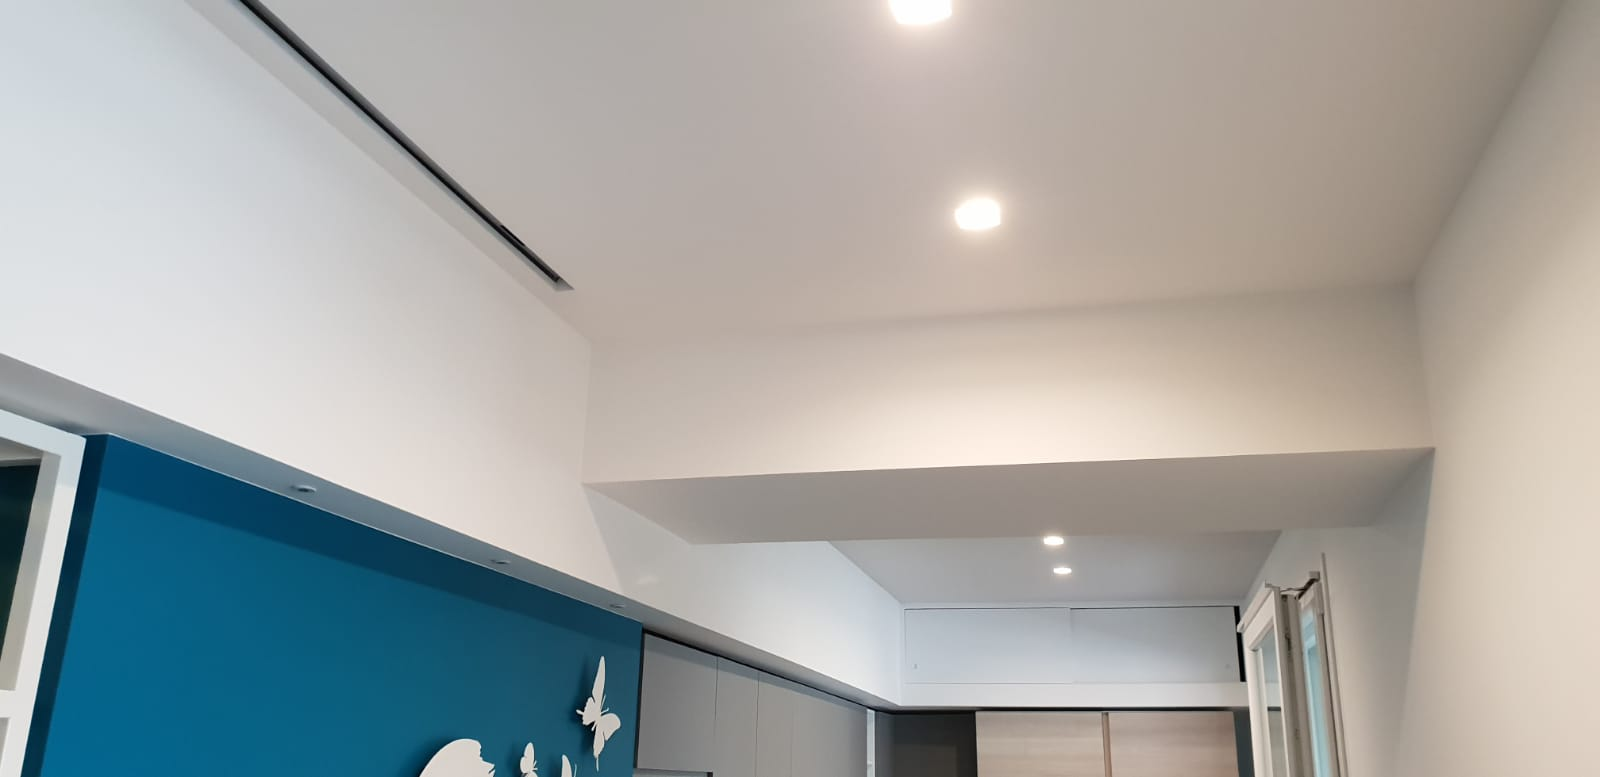 Soffitto In Cartongesso Design Moderno